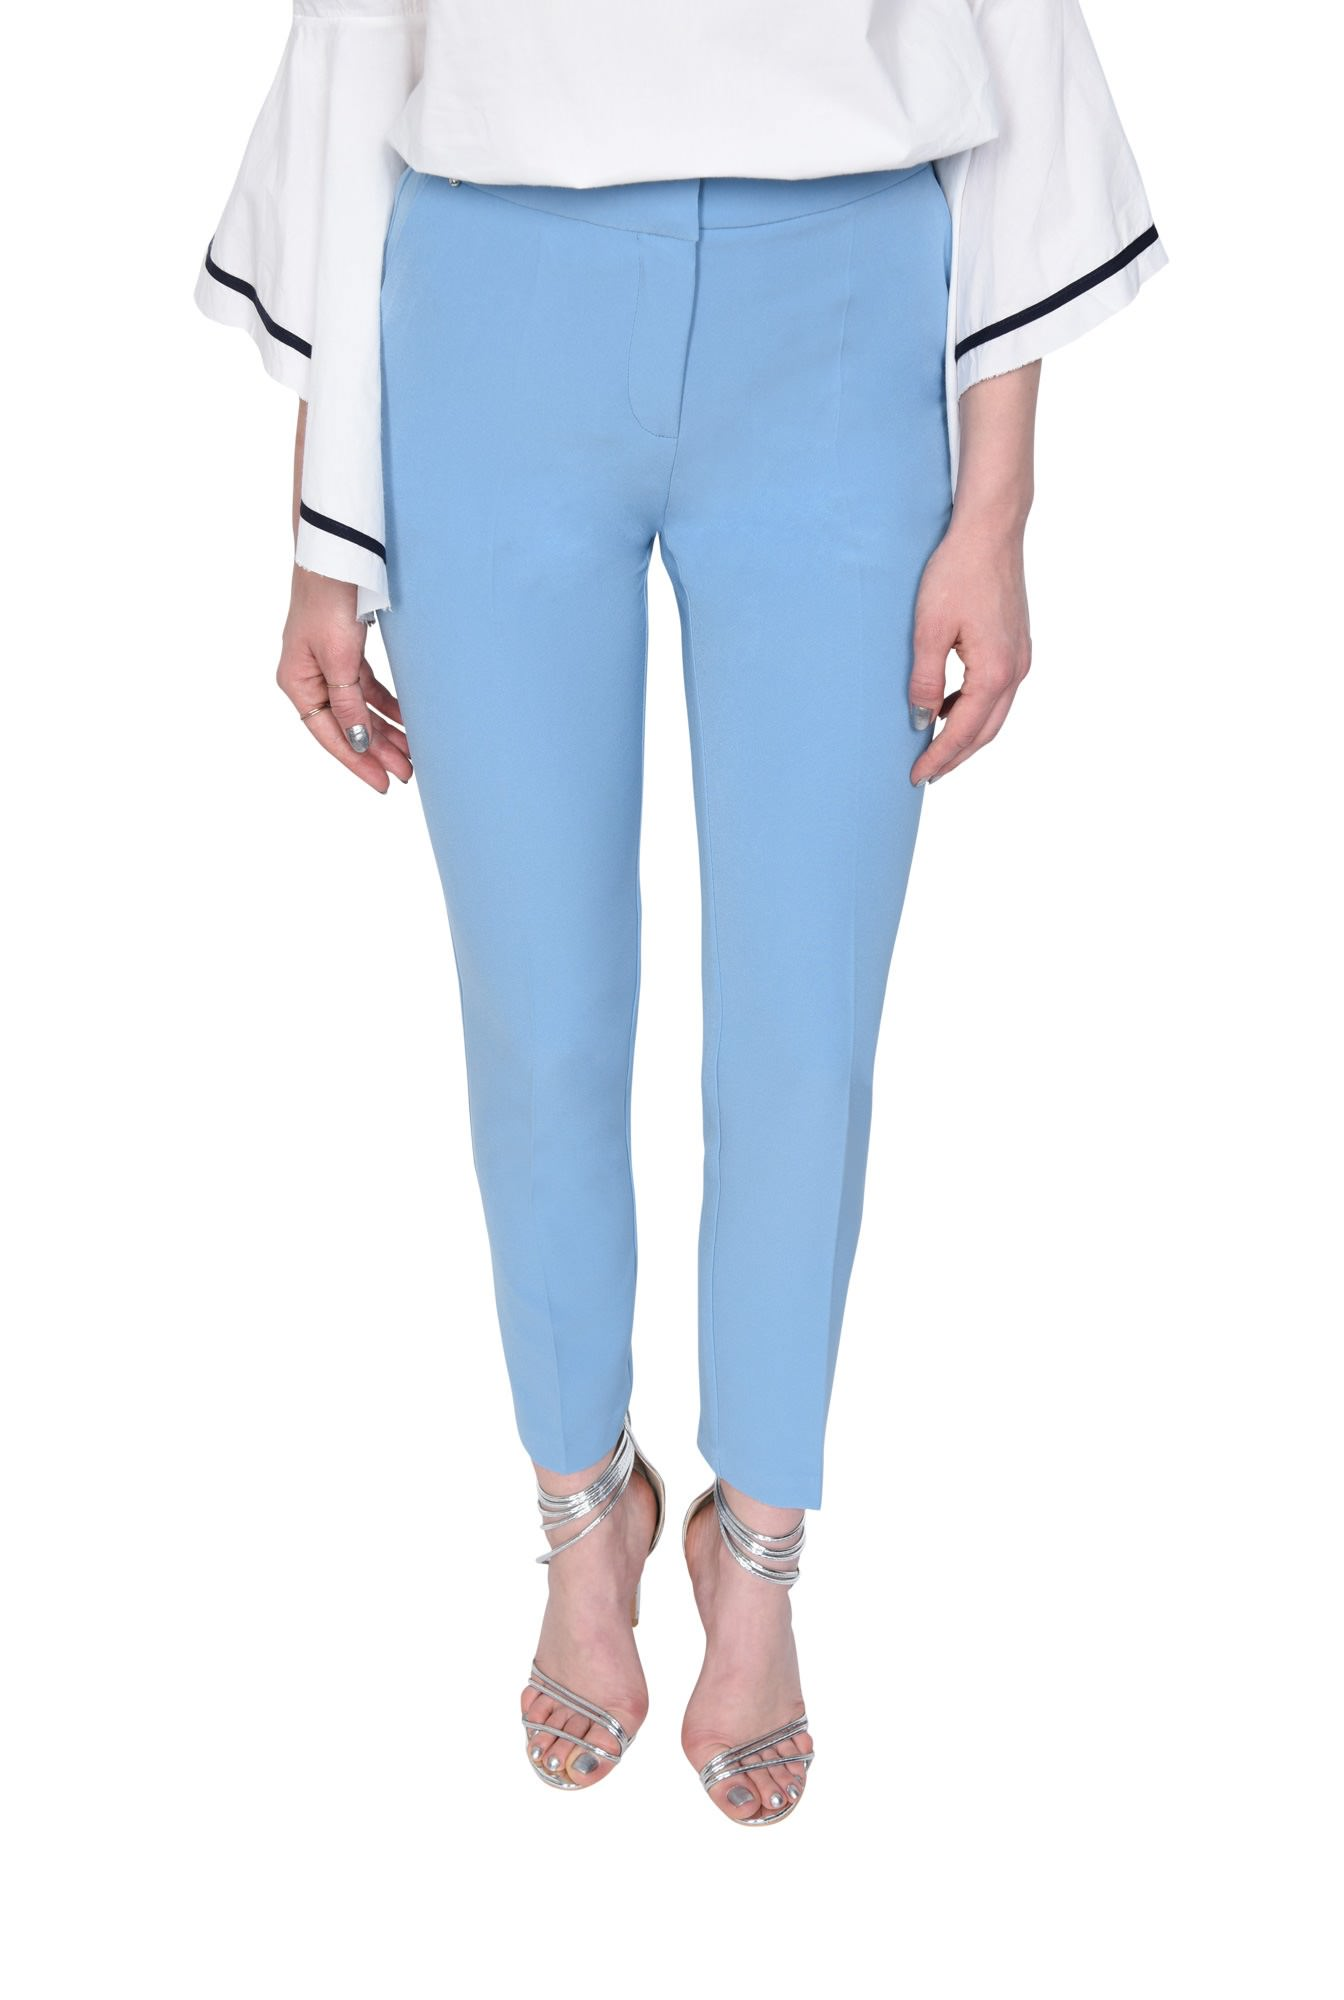 2 - PANTALON OFFICE CONIC PT 142-BLEU